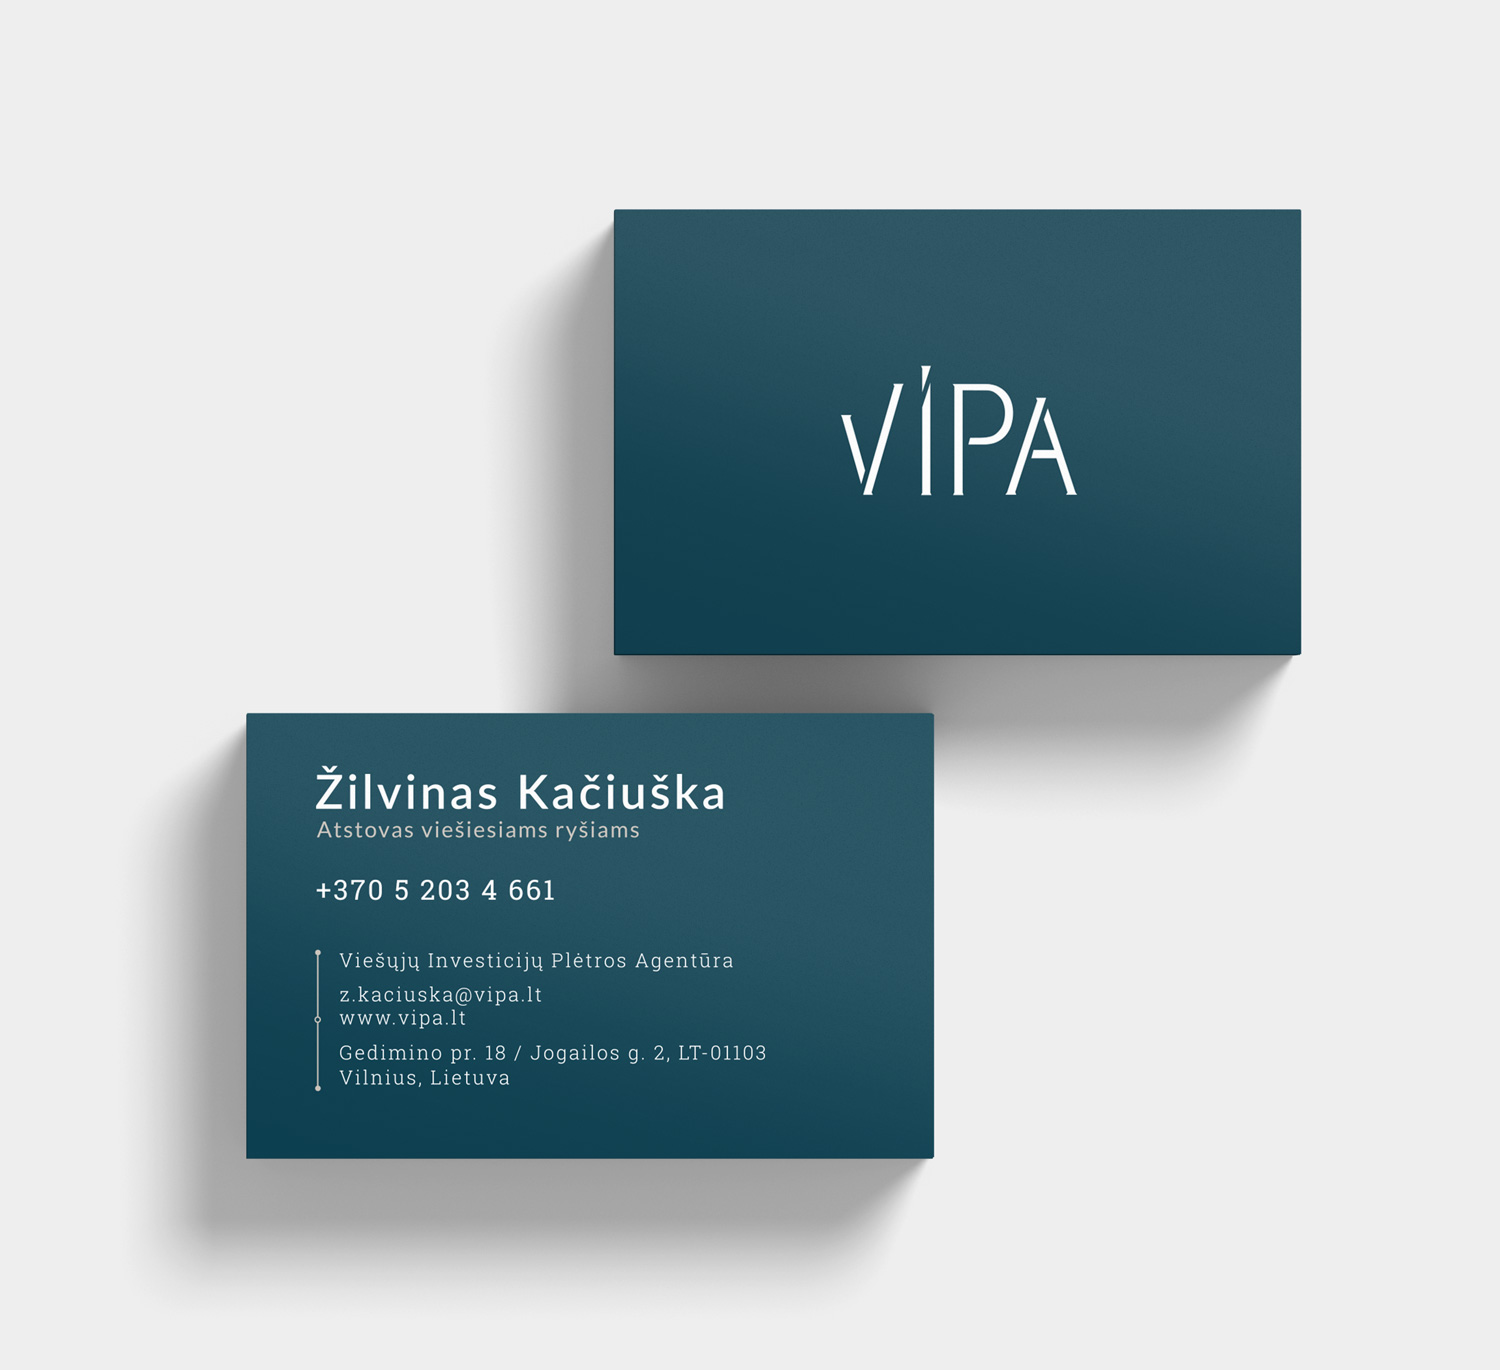 Vipa-business-cards-VJS-agency-2.jpg